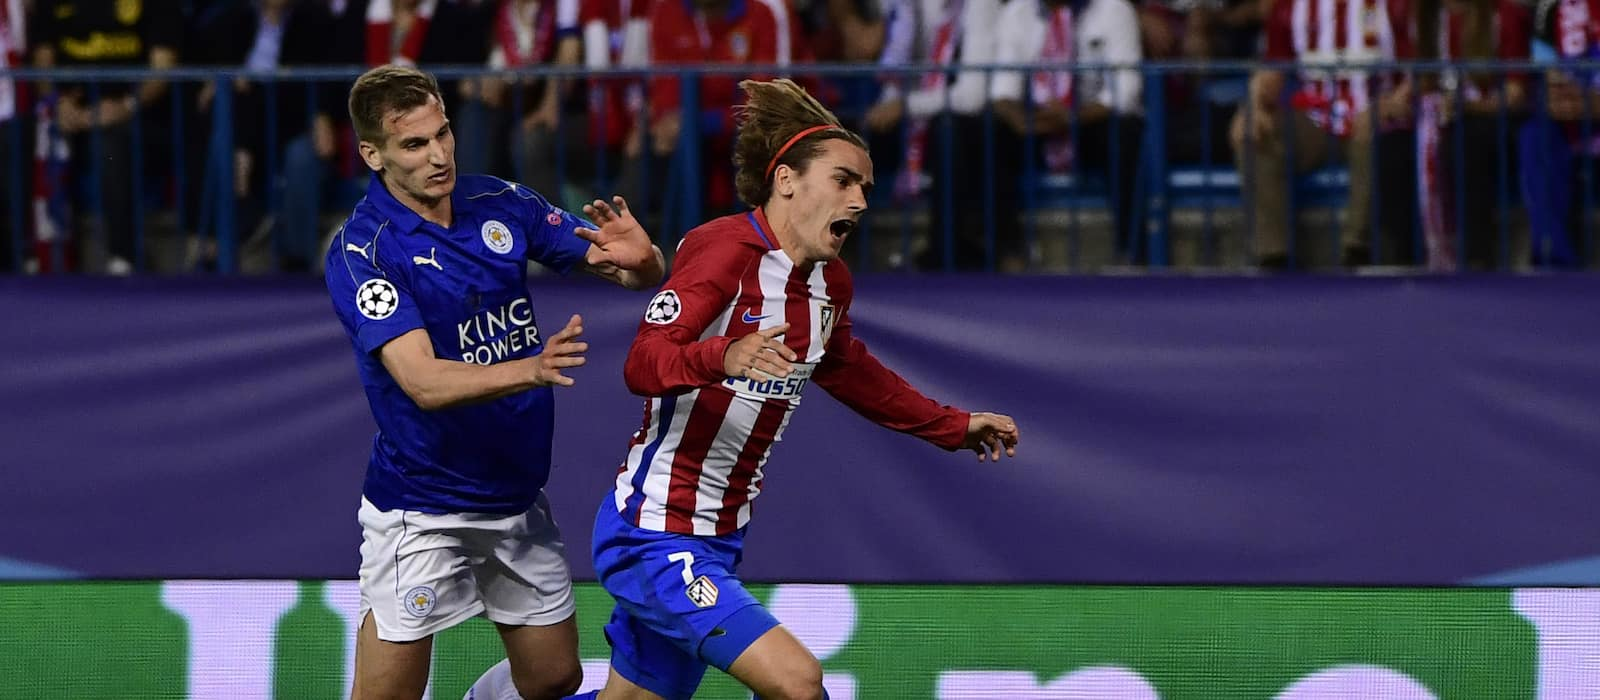 Diego Simeone plays down rumours linking Antoine Griezmann with Manchester United